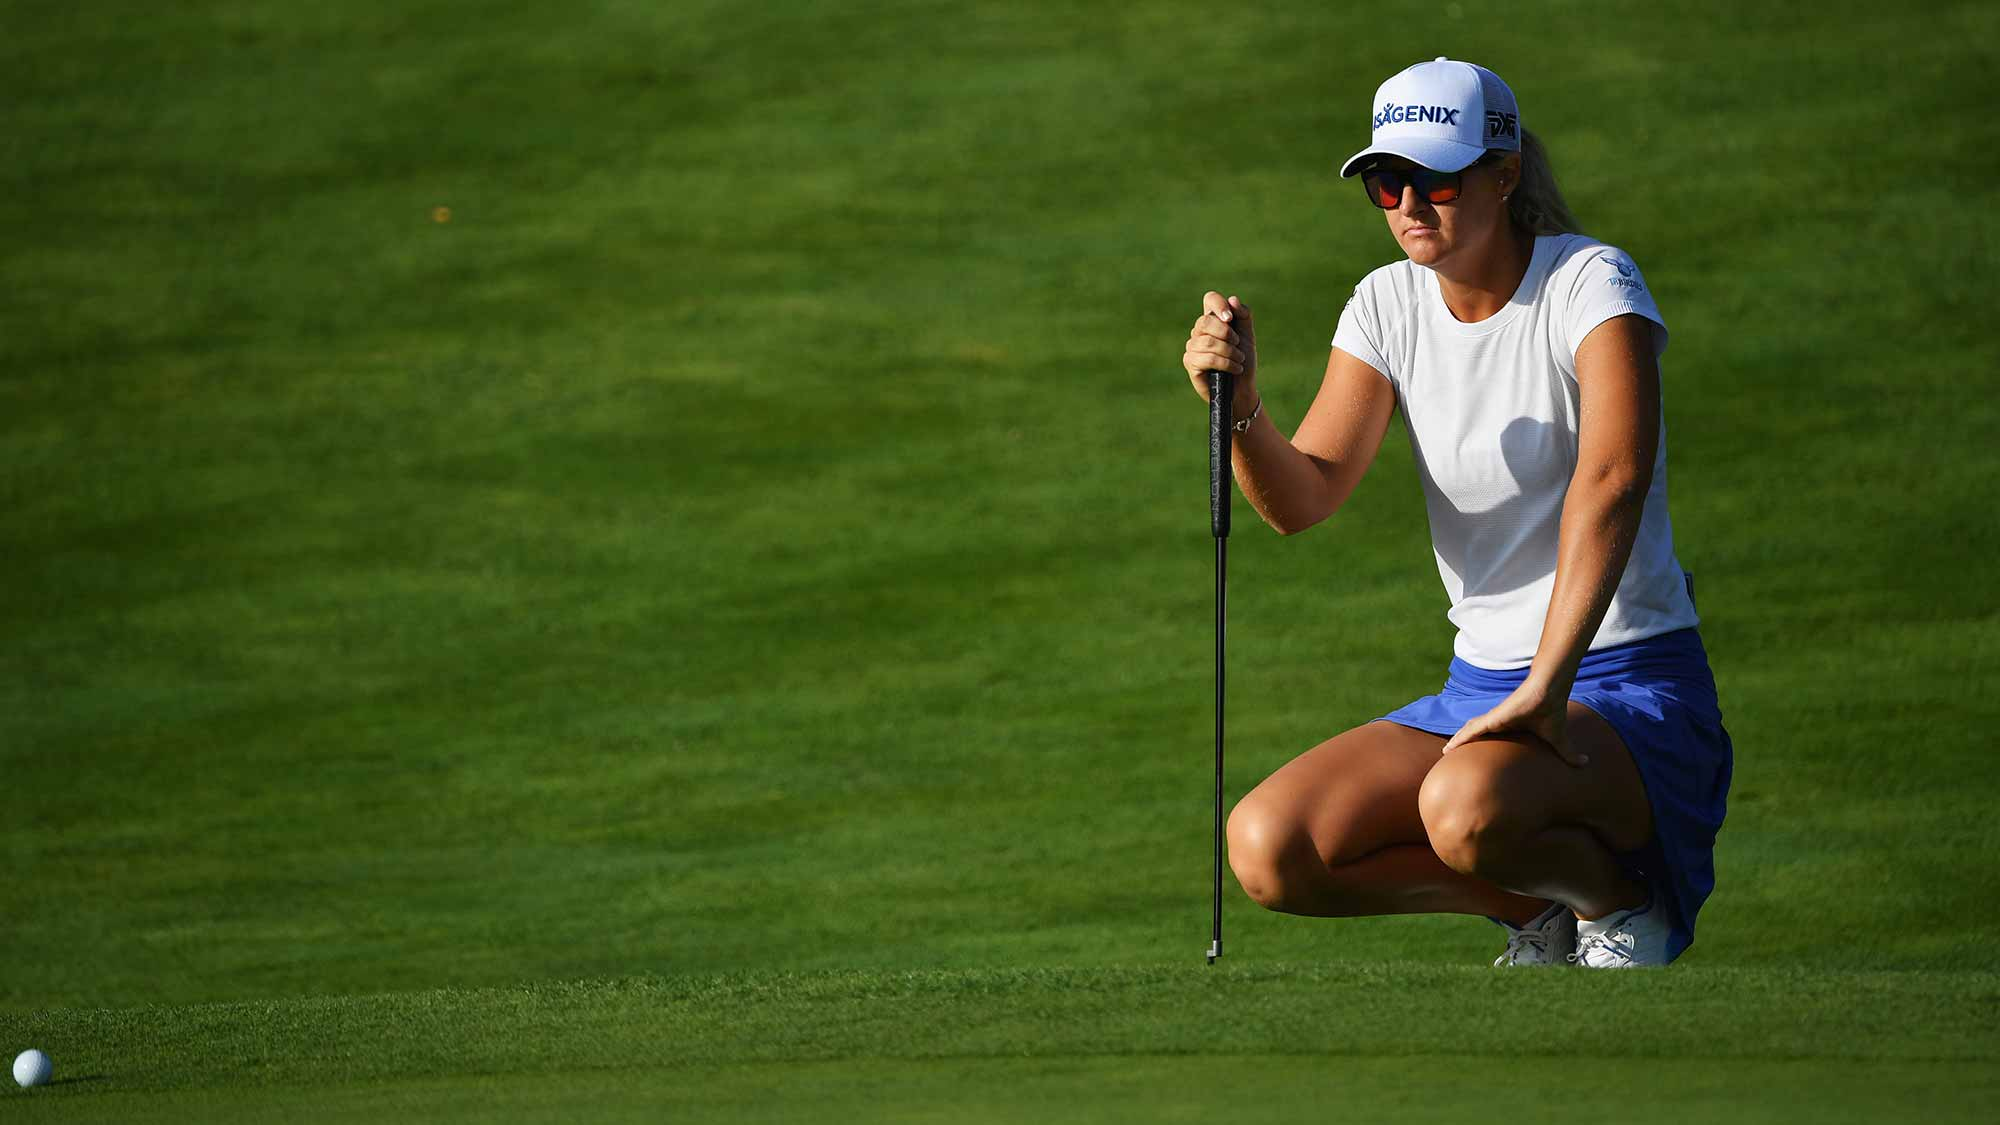 Anna Nordqvist of Sweden lines up a putt during day one of the Evian Championship at Evian Resort Golf Club on September 13, 2018 in Evian-les-Bains, France